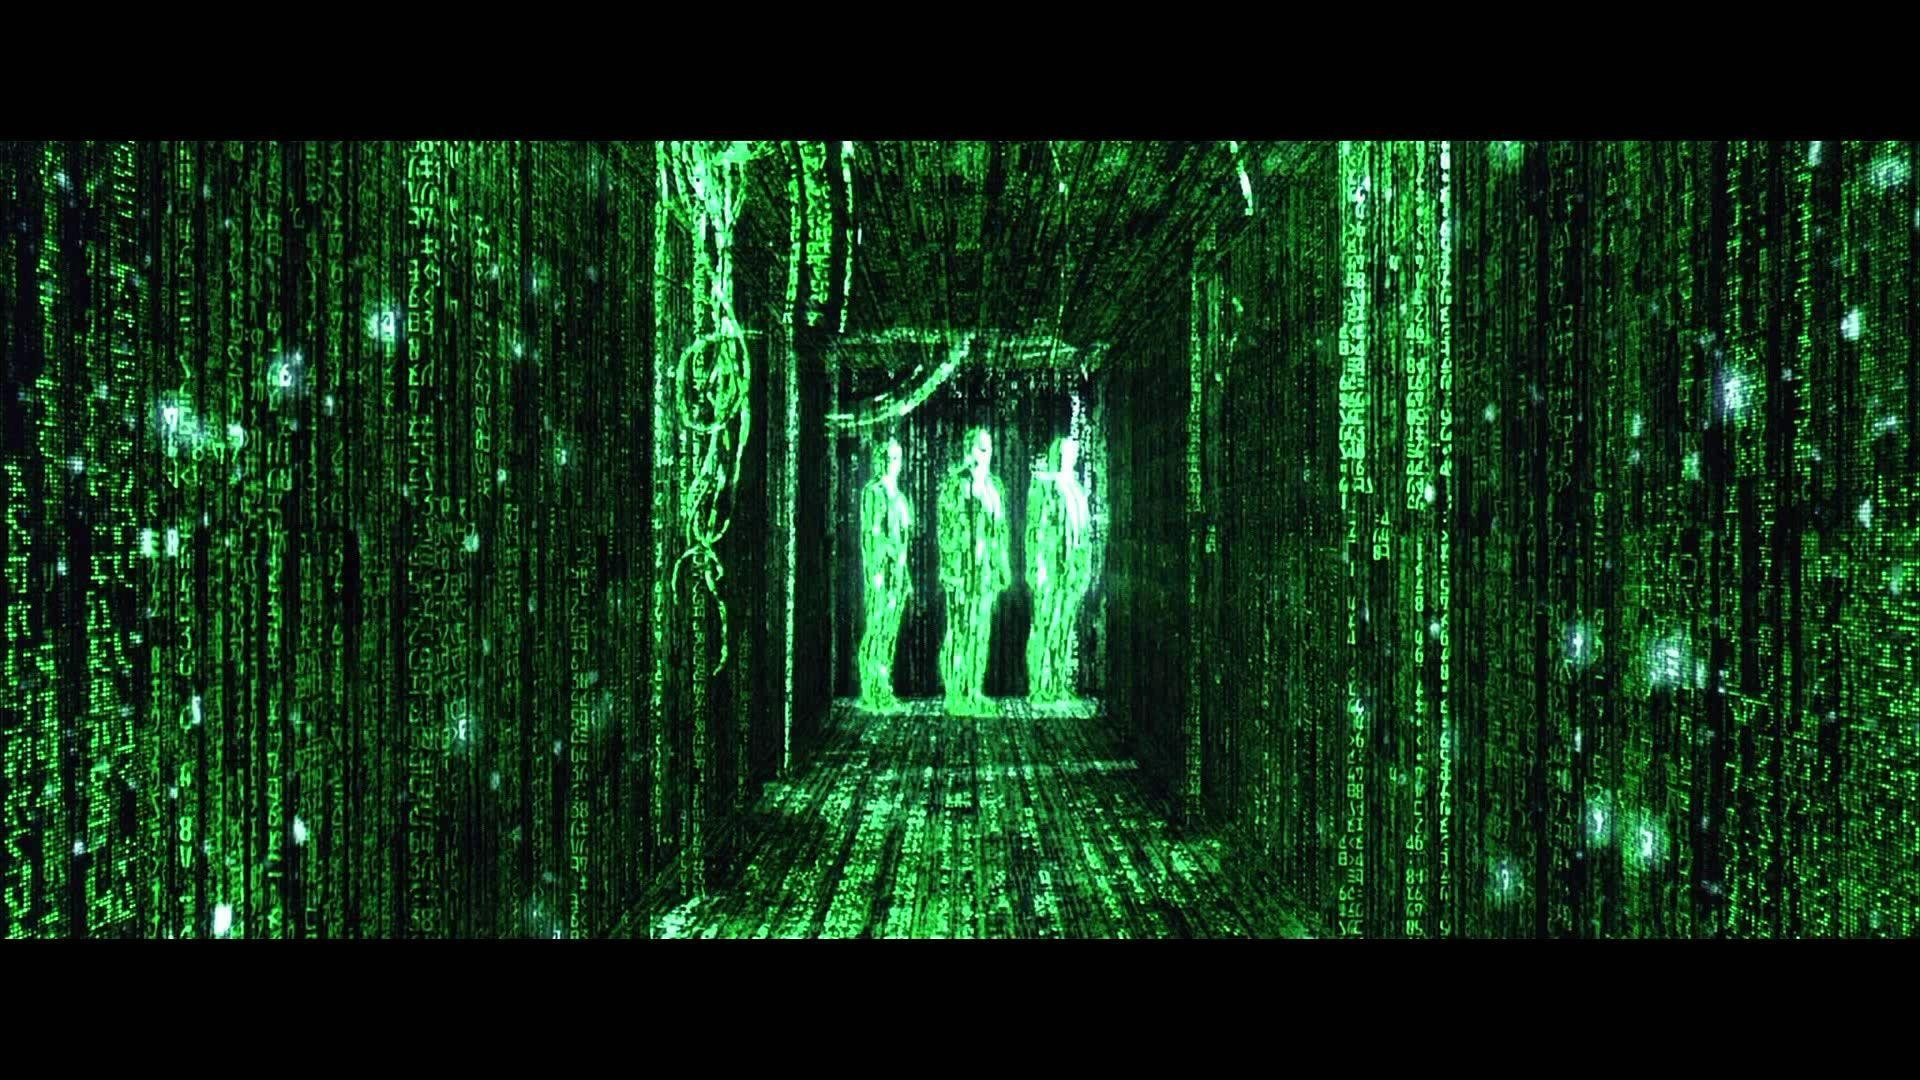 Matrix Movie Hd Wallpapers Film Image 1920x1080PX ~ Wallpapers